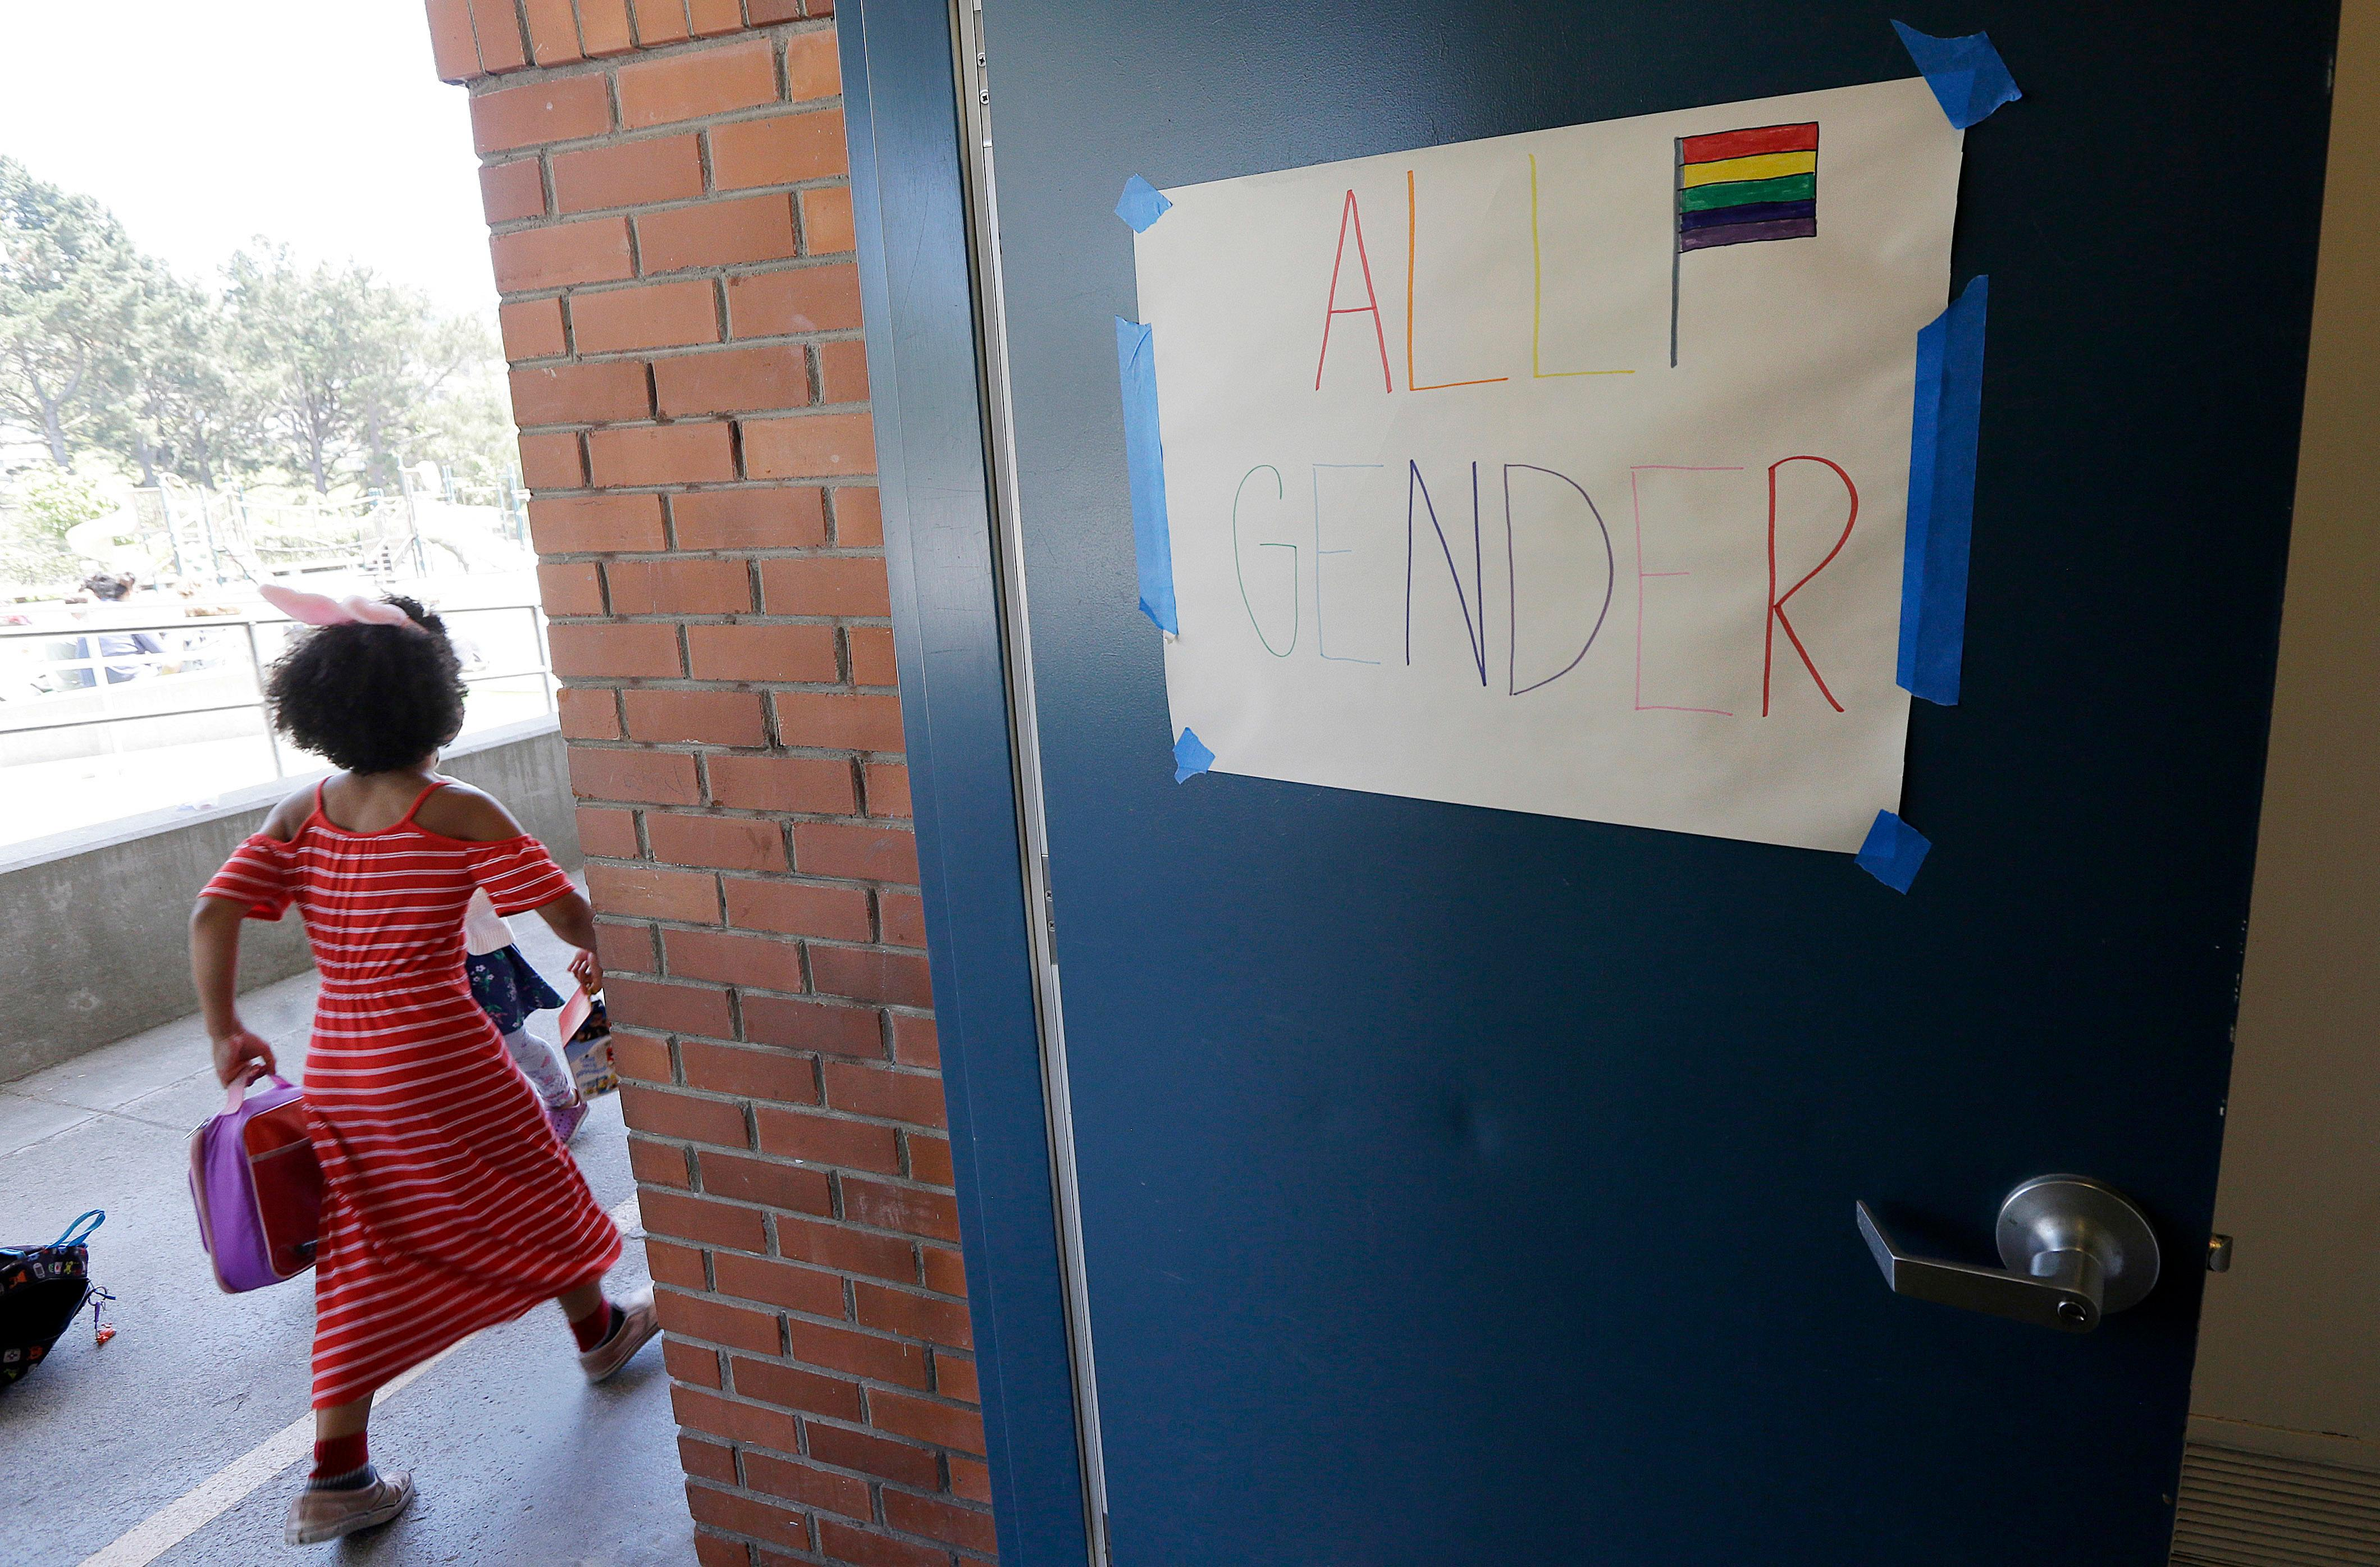 "In this Tuesday, July 11, 2017 photo, a camper walks past a sign for an all gender bathroom at the Bay Area Rainbow Day Camp in El Cerrito, Calif. The camp caters to transgender and ""gender fluid"" children, aged 4-12, making it one of the only camps of its kind in the world open to preschoolers, experts say. (AP Photo/Jeff Chiu)"